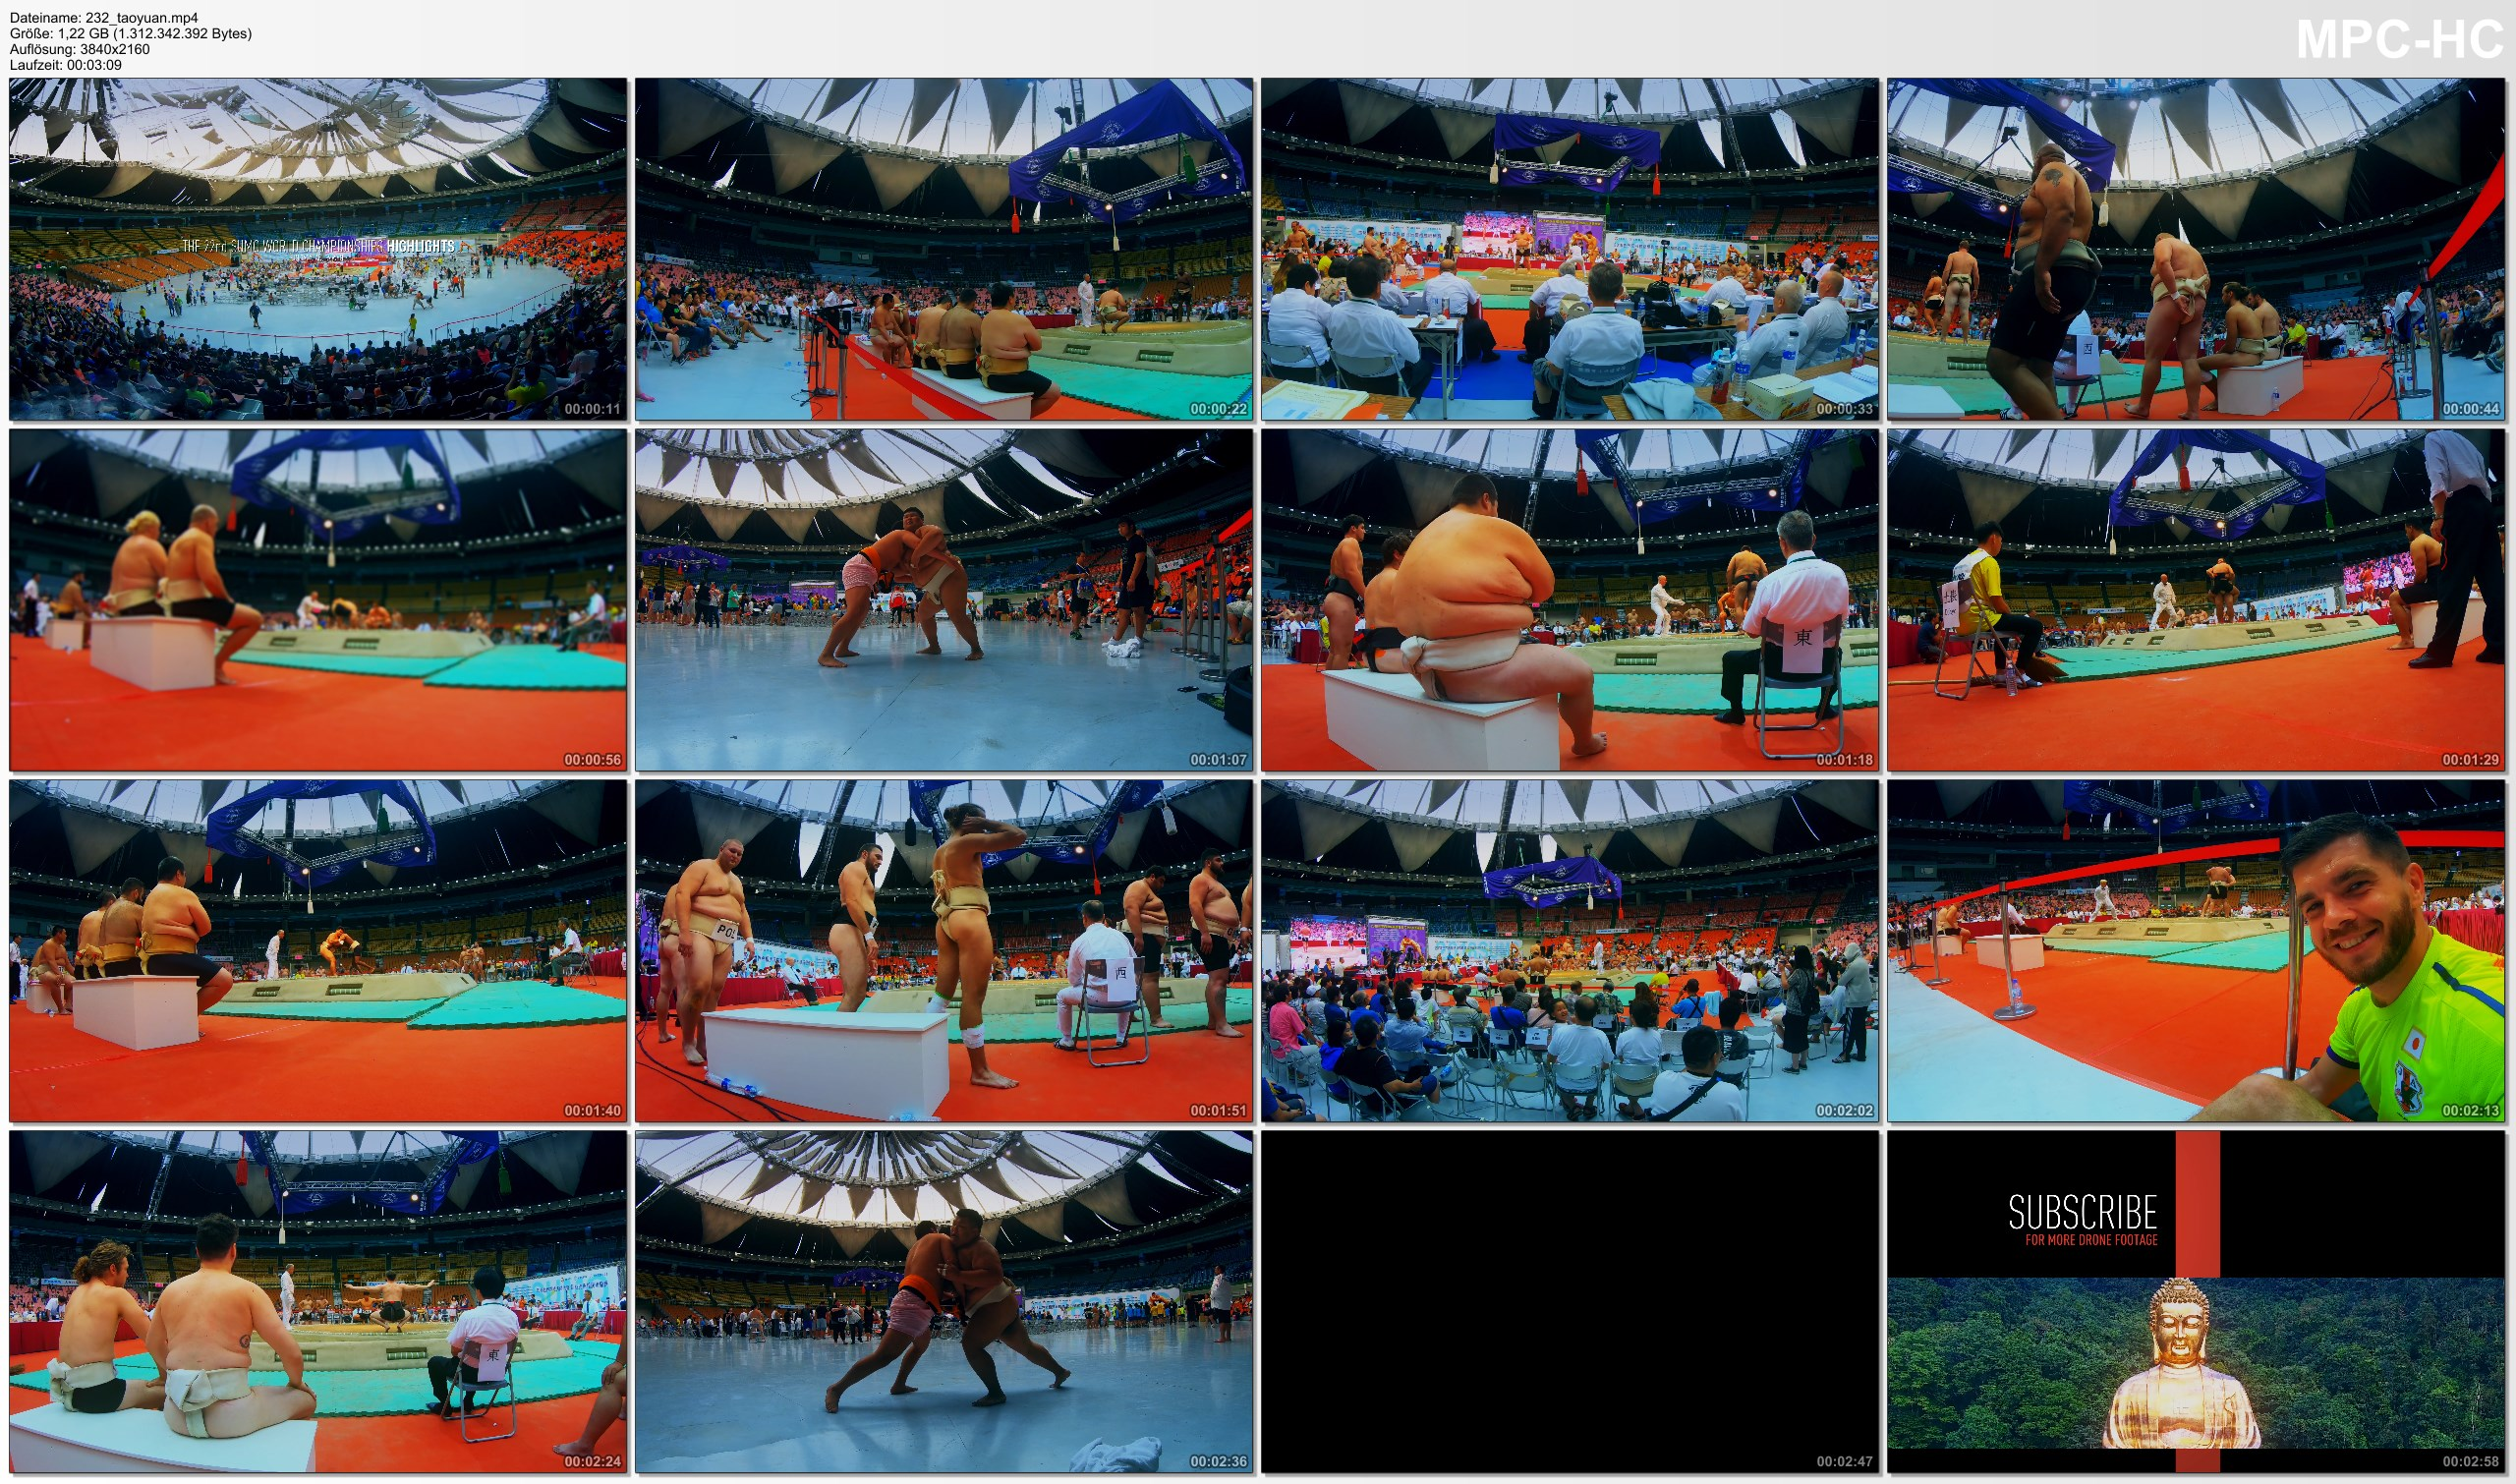 Pictures from Video 【4K】Footage | Sumo World Championships 2018 HIGHLIGHTS ..:: Taoyuan | Taiwan 22nd Ed. *TRAVEL VIDEO*